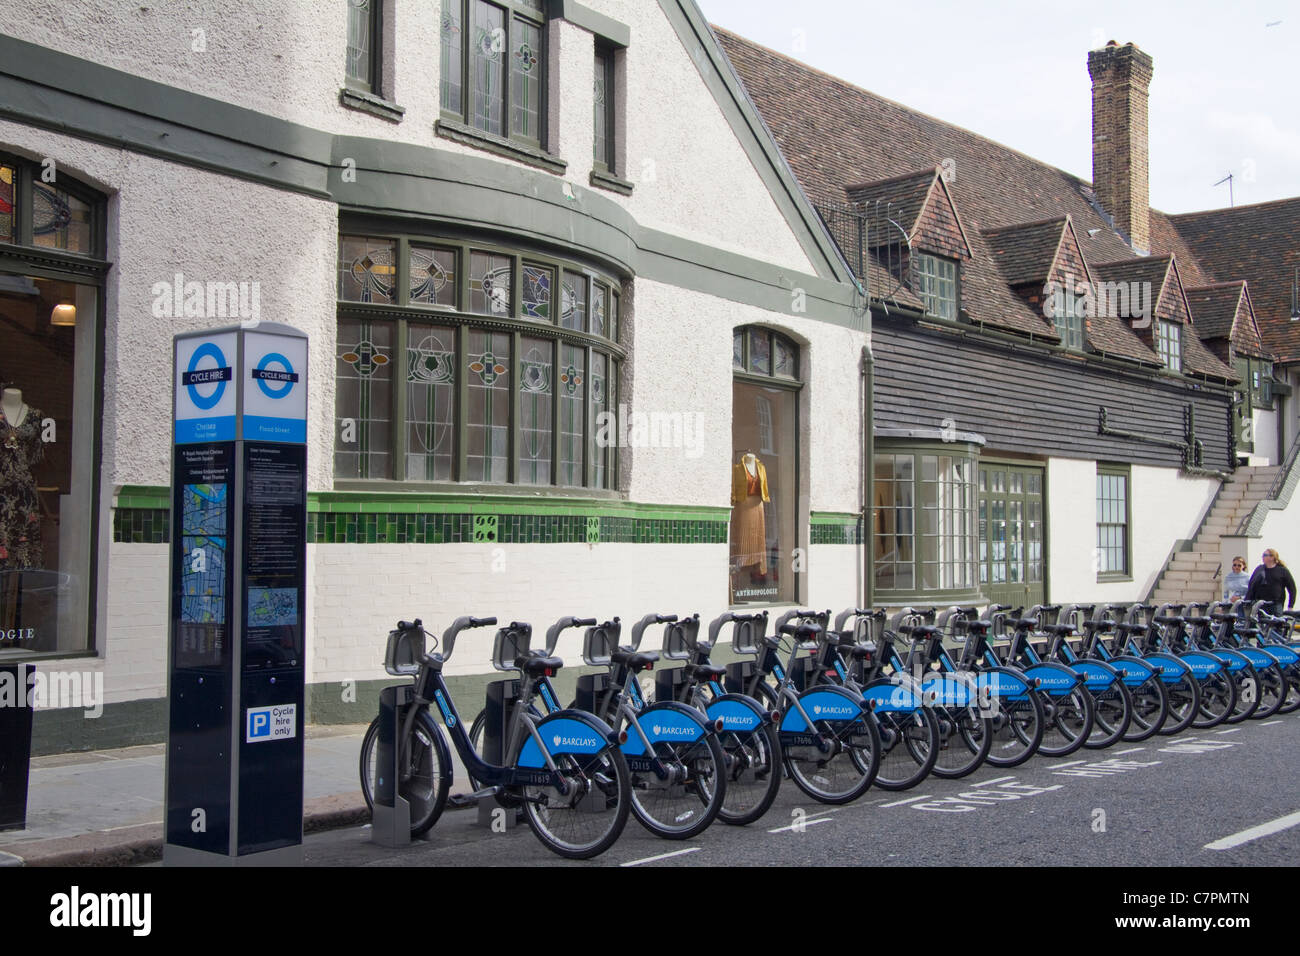 Bicycles for hire in Kensington London  UK Stock Photo